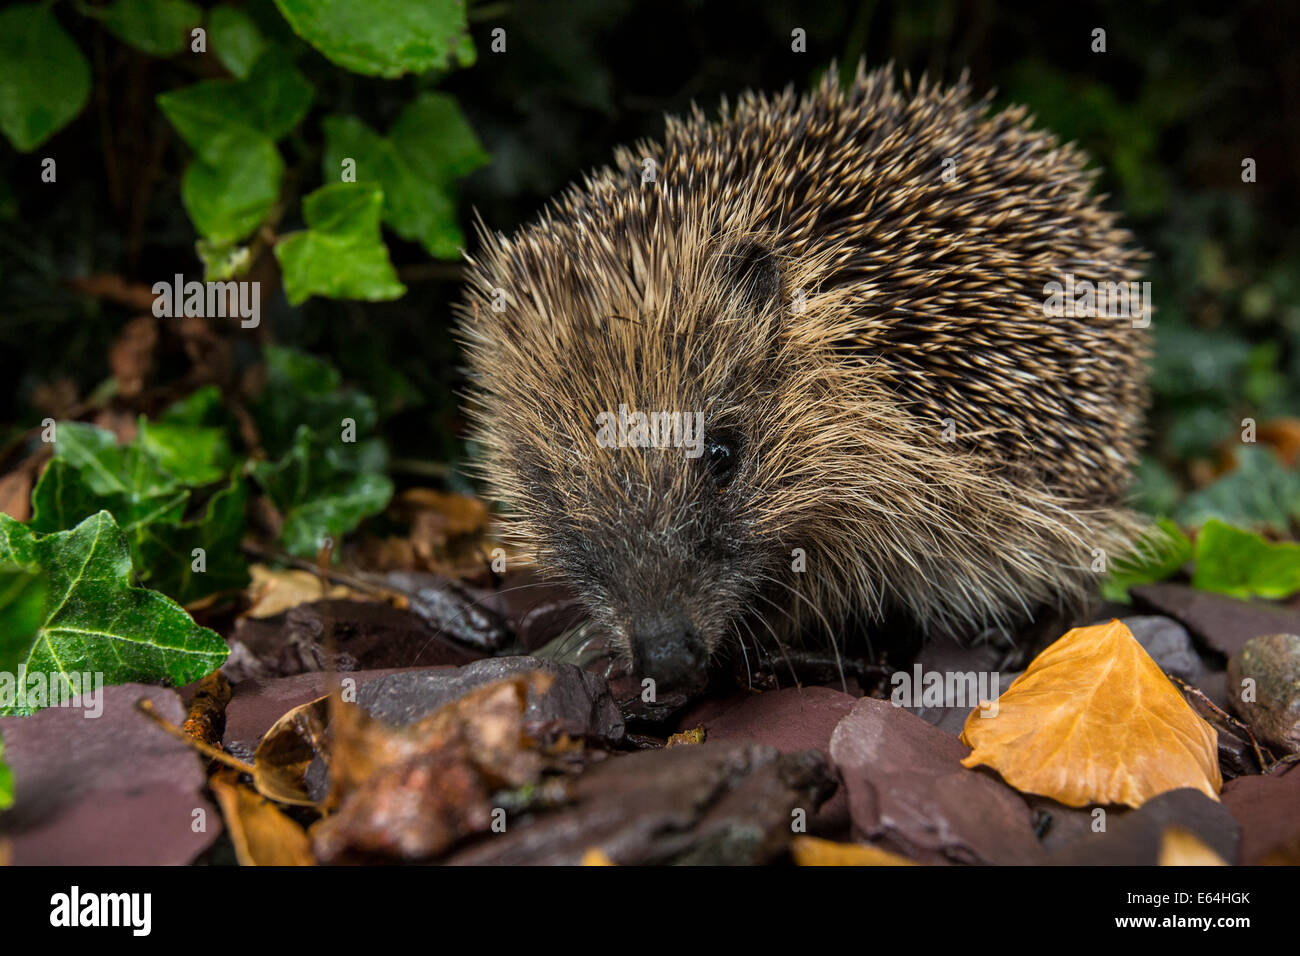 The Western Hedgehog - The only species of European hedgehog found in the British Isles (Erinaceus europaeus). A - Stock Image